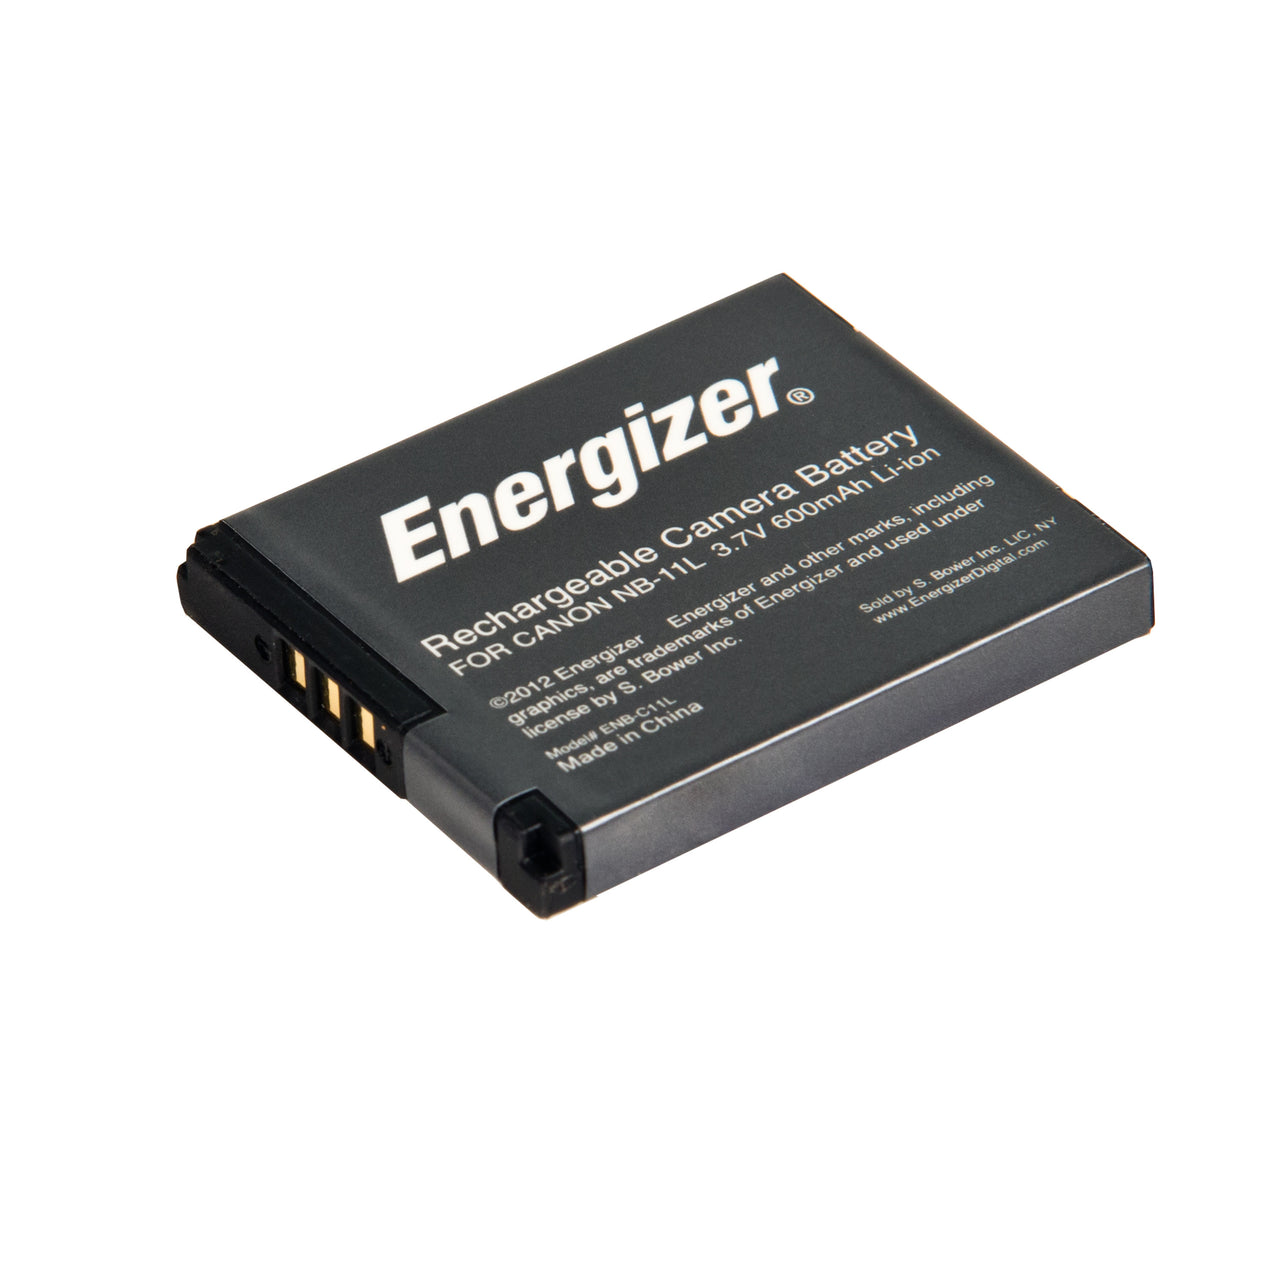 Energizer® ENB-C11L Digital Replacement Battery for Canon NB-11L